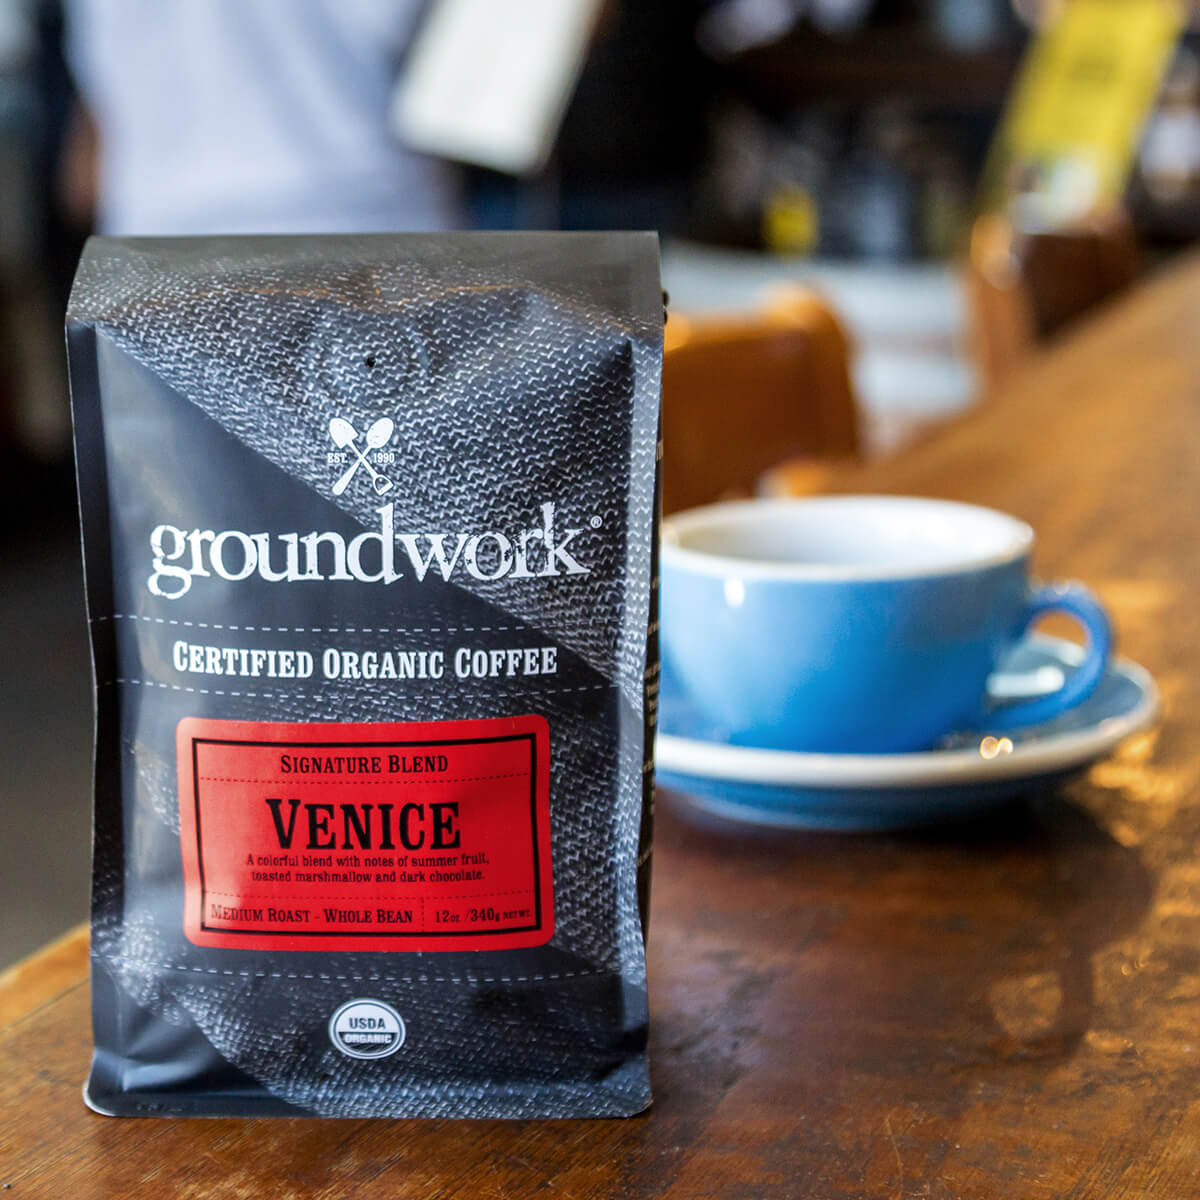 bag of Groundwork's Venice coffee on table with blue cup